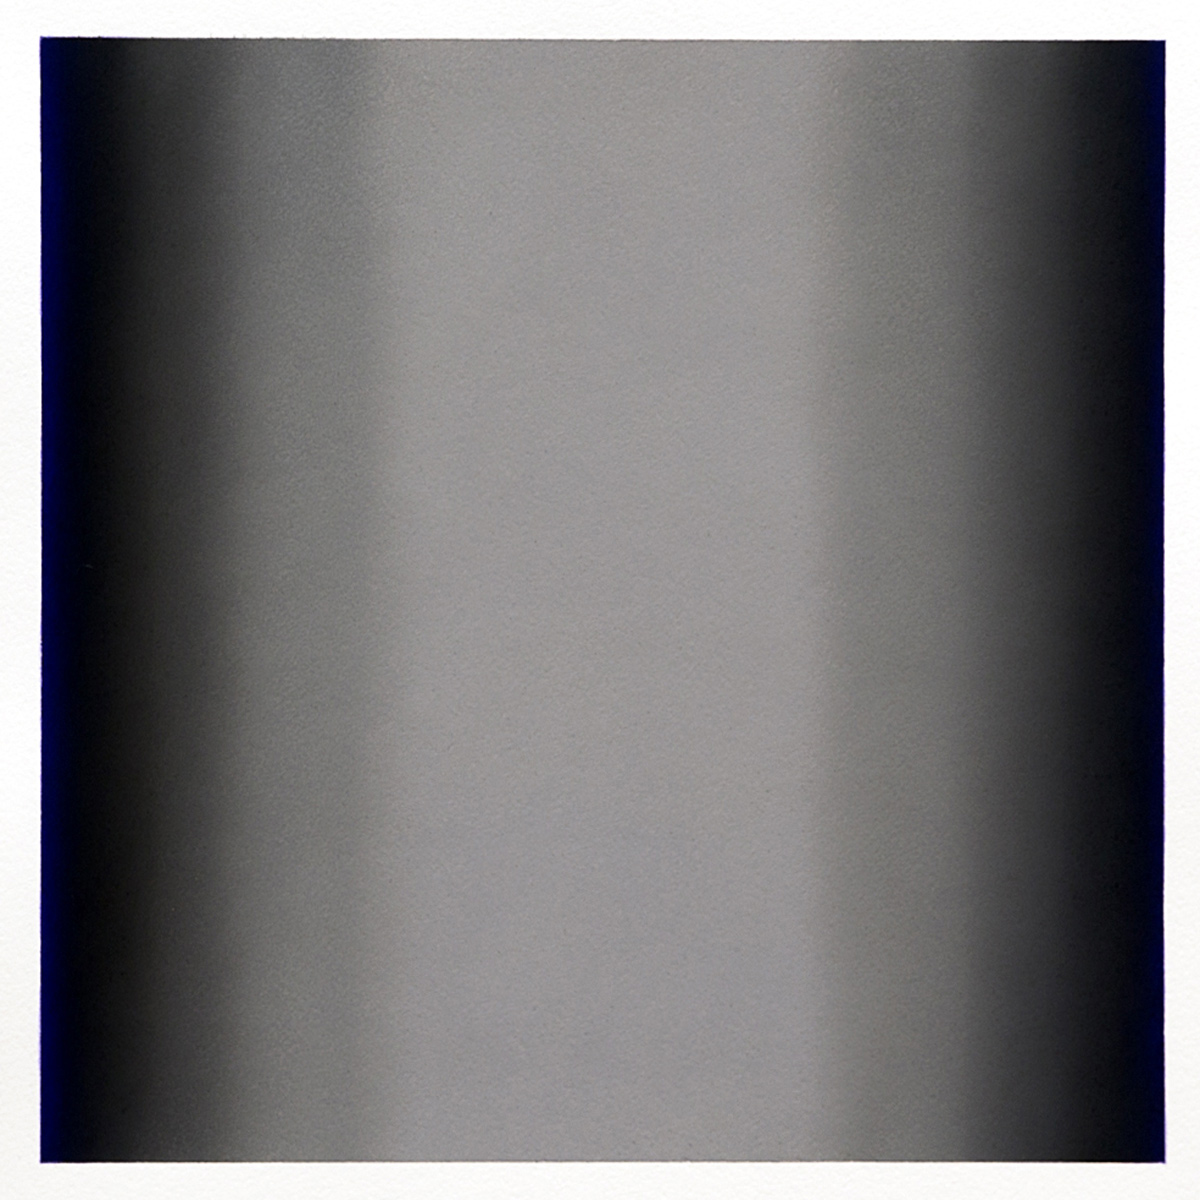 Gray Series #1, 2013, pastel on paper, image 14 x 14 in. (36 x 36 cm.), sheet 30 x 22 in. (76 x 56 cm.)